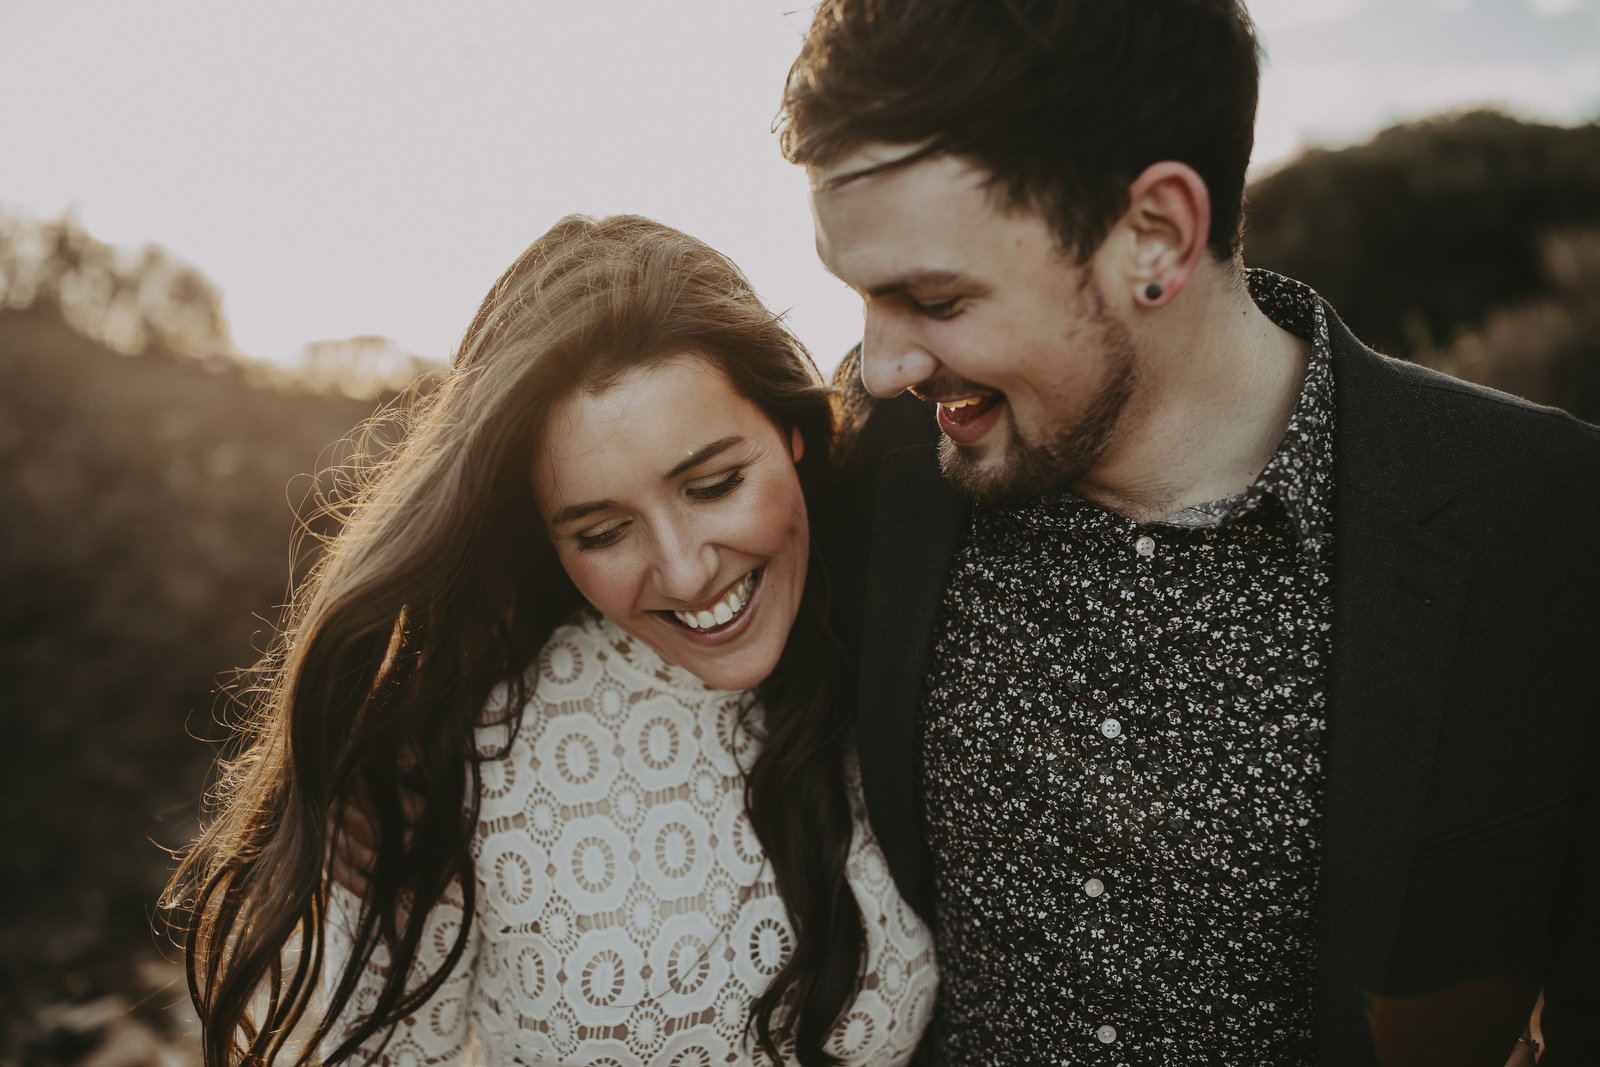 athena-and-camron-sydney-wedding-boho-romance-james-simmons-photography-christian-couple-goals84